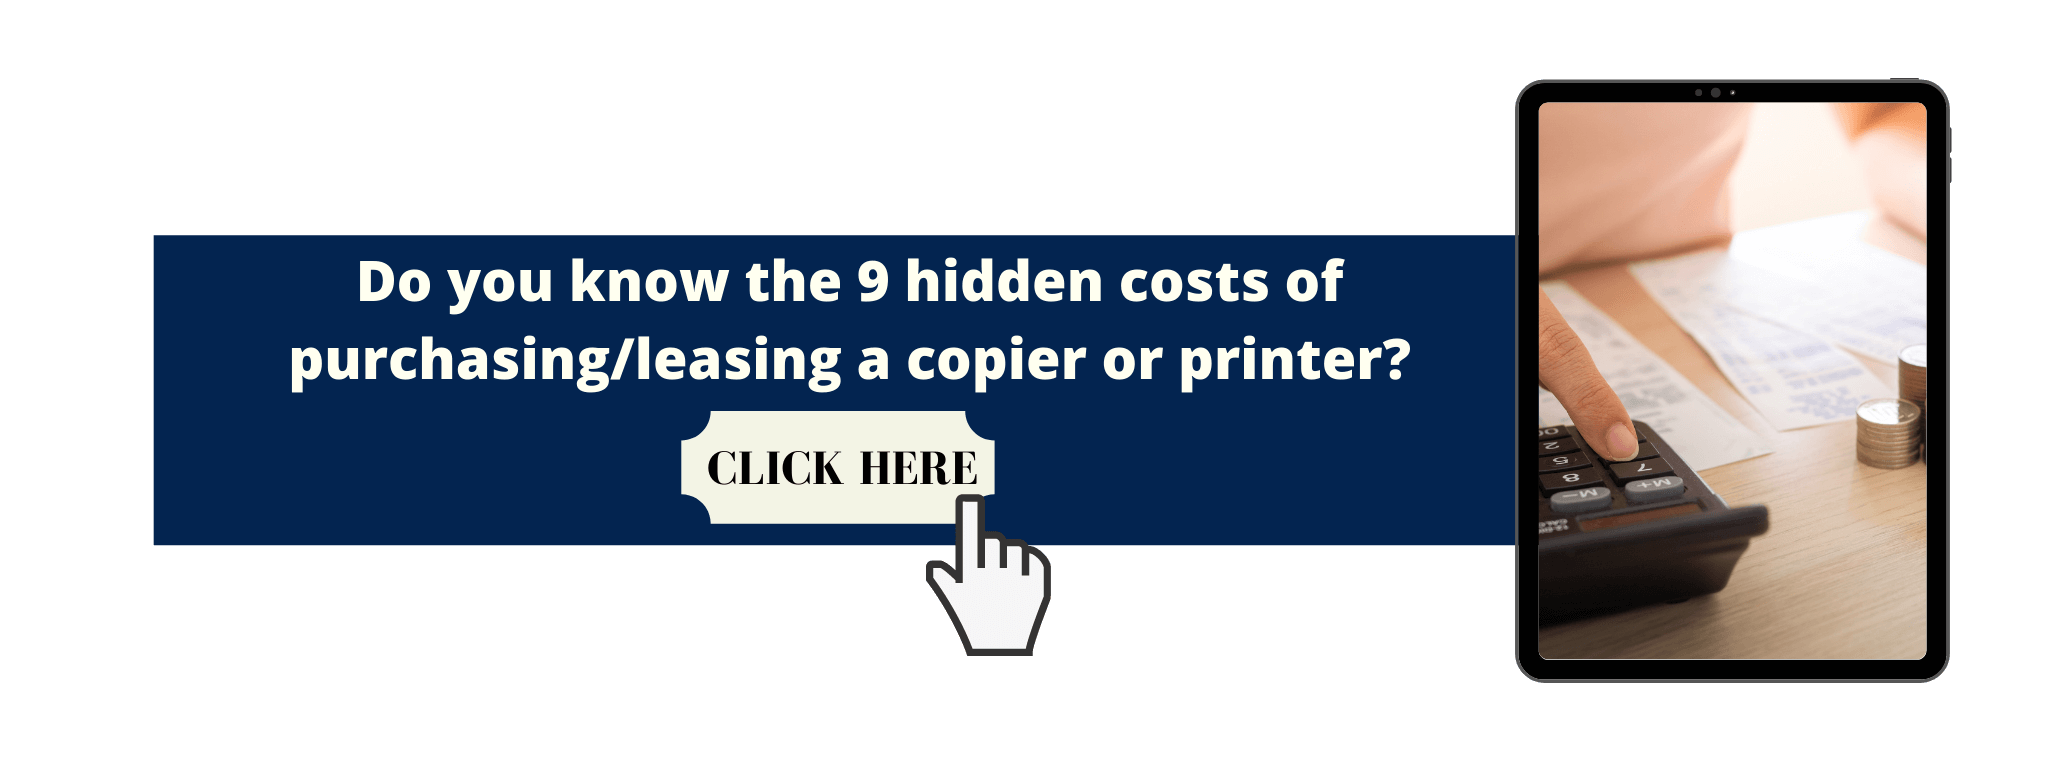 Infographic about hidden costs.